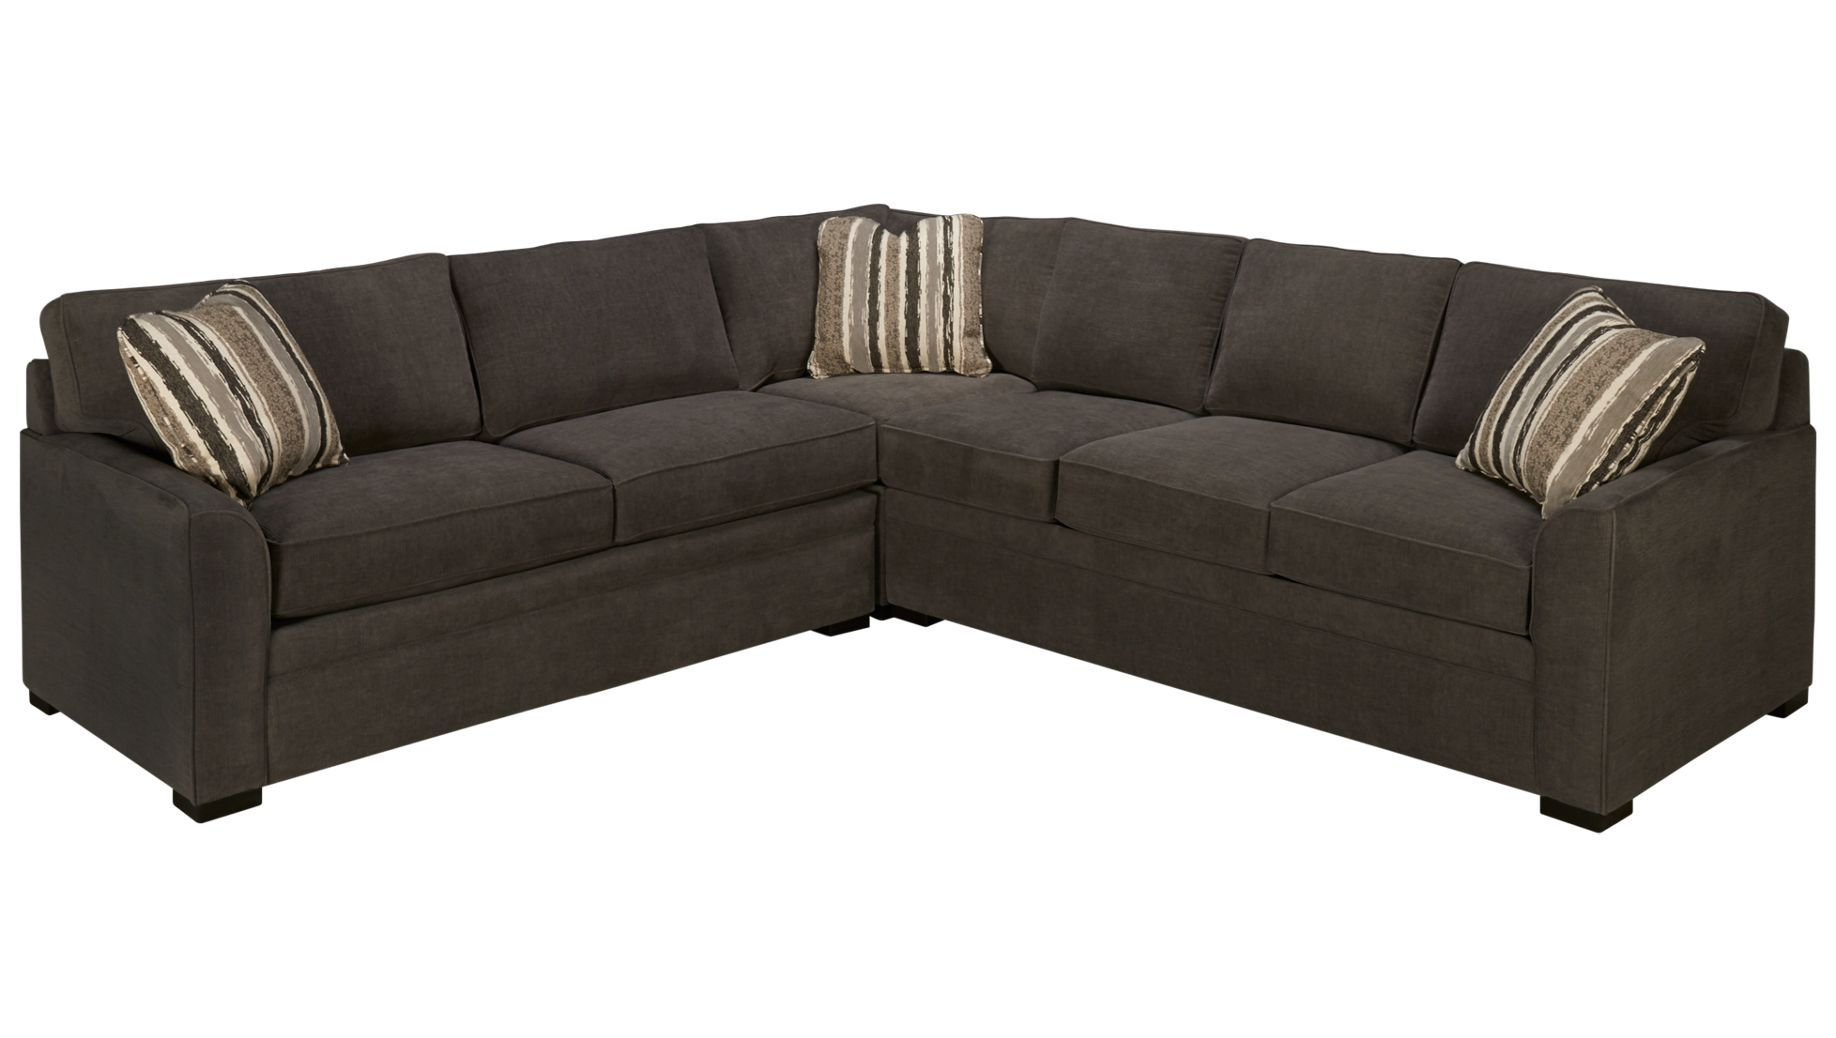 Jonathan Louis Sleepers Sleepers 3 Piece Sleeper Sectional Jordan S Furniture Sleeper Sectional Sectional Sectional Sleeper Sofa